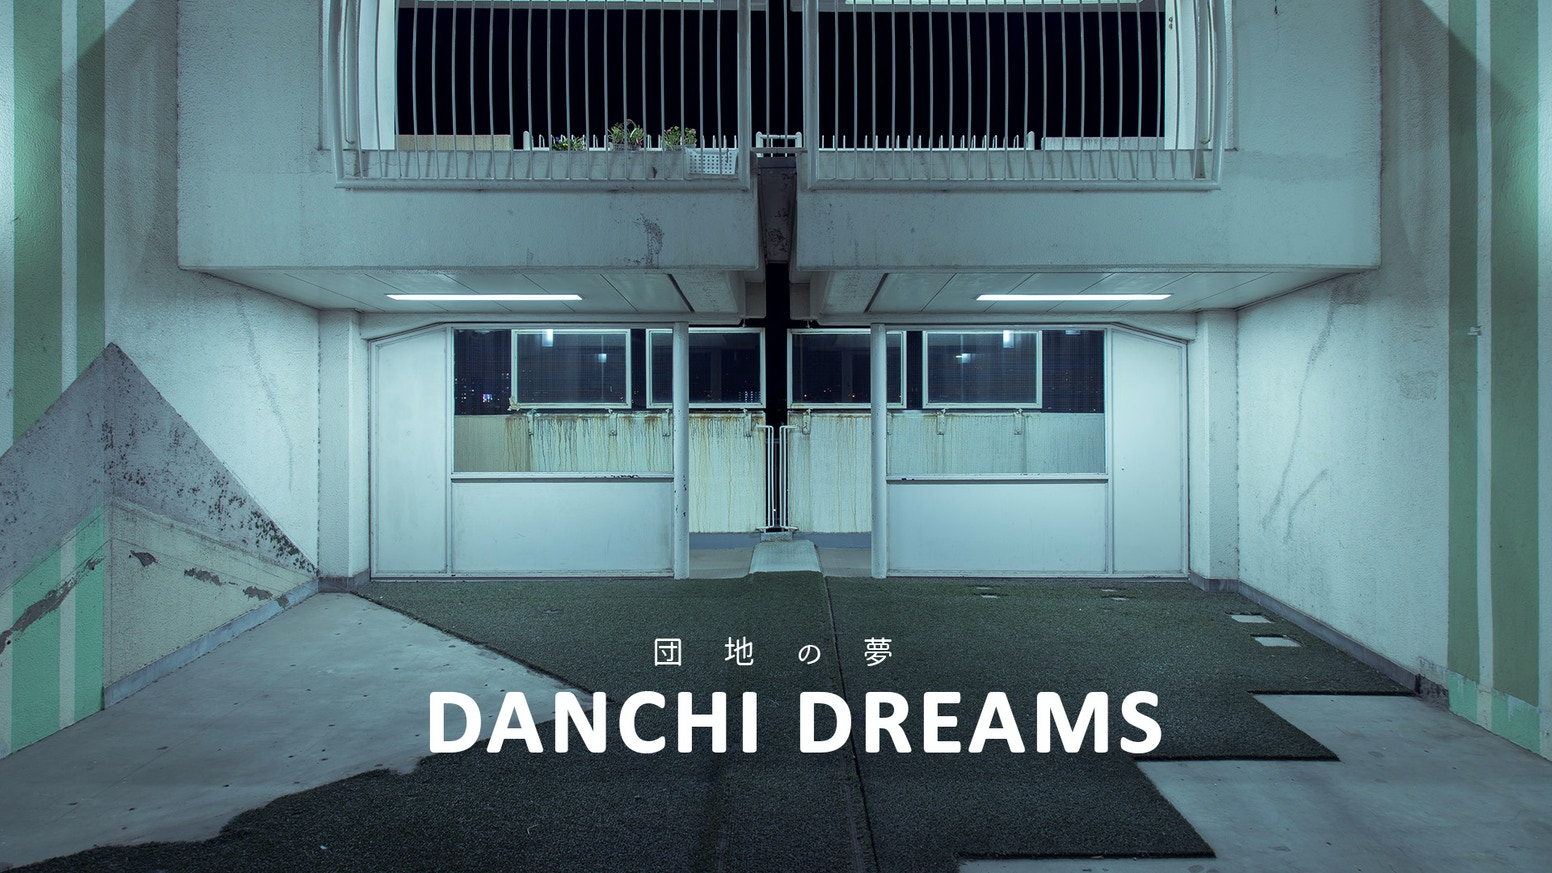 DANCHI DREAMS: A Photobook Exploring the Dream and Decay of Modern Japanese Public Housing Architecture.